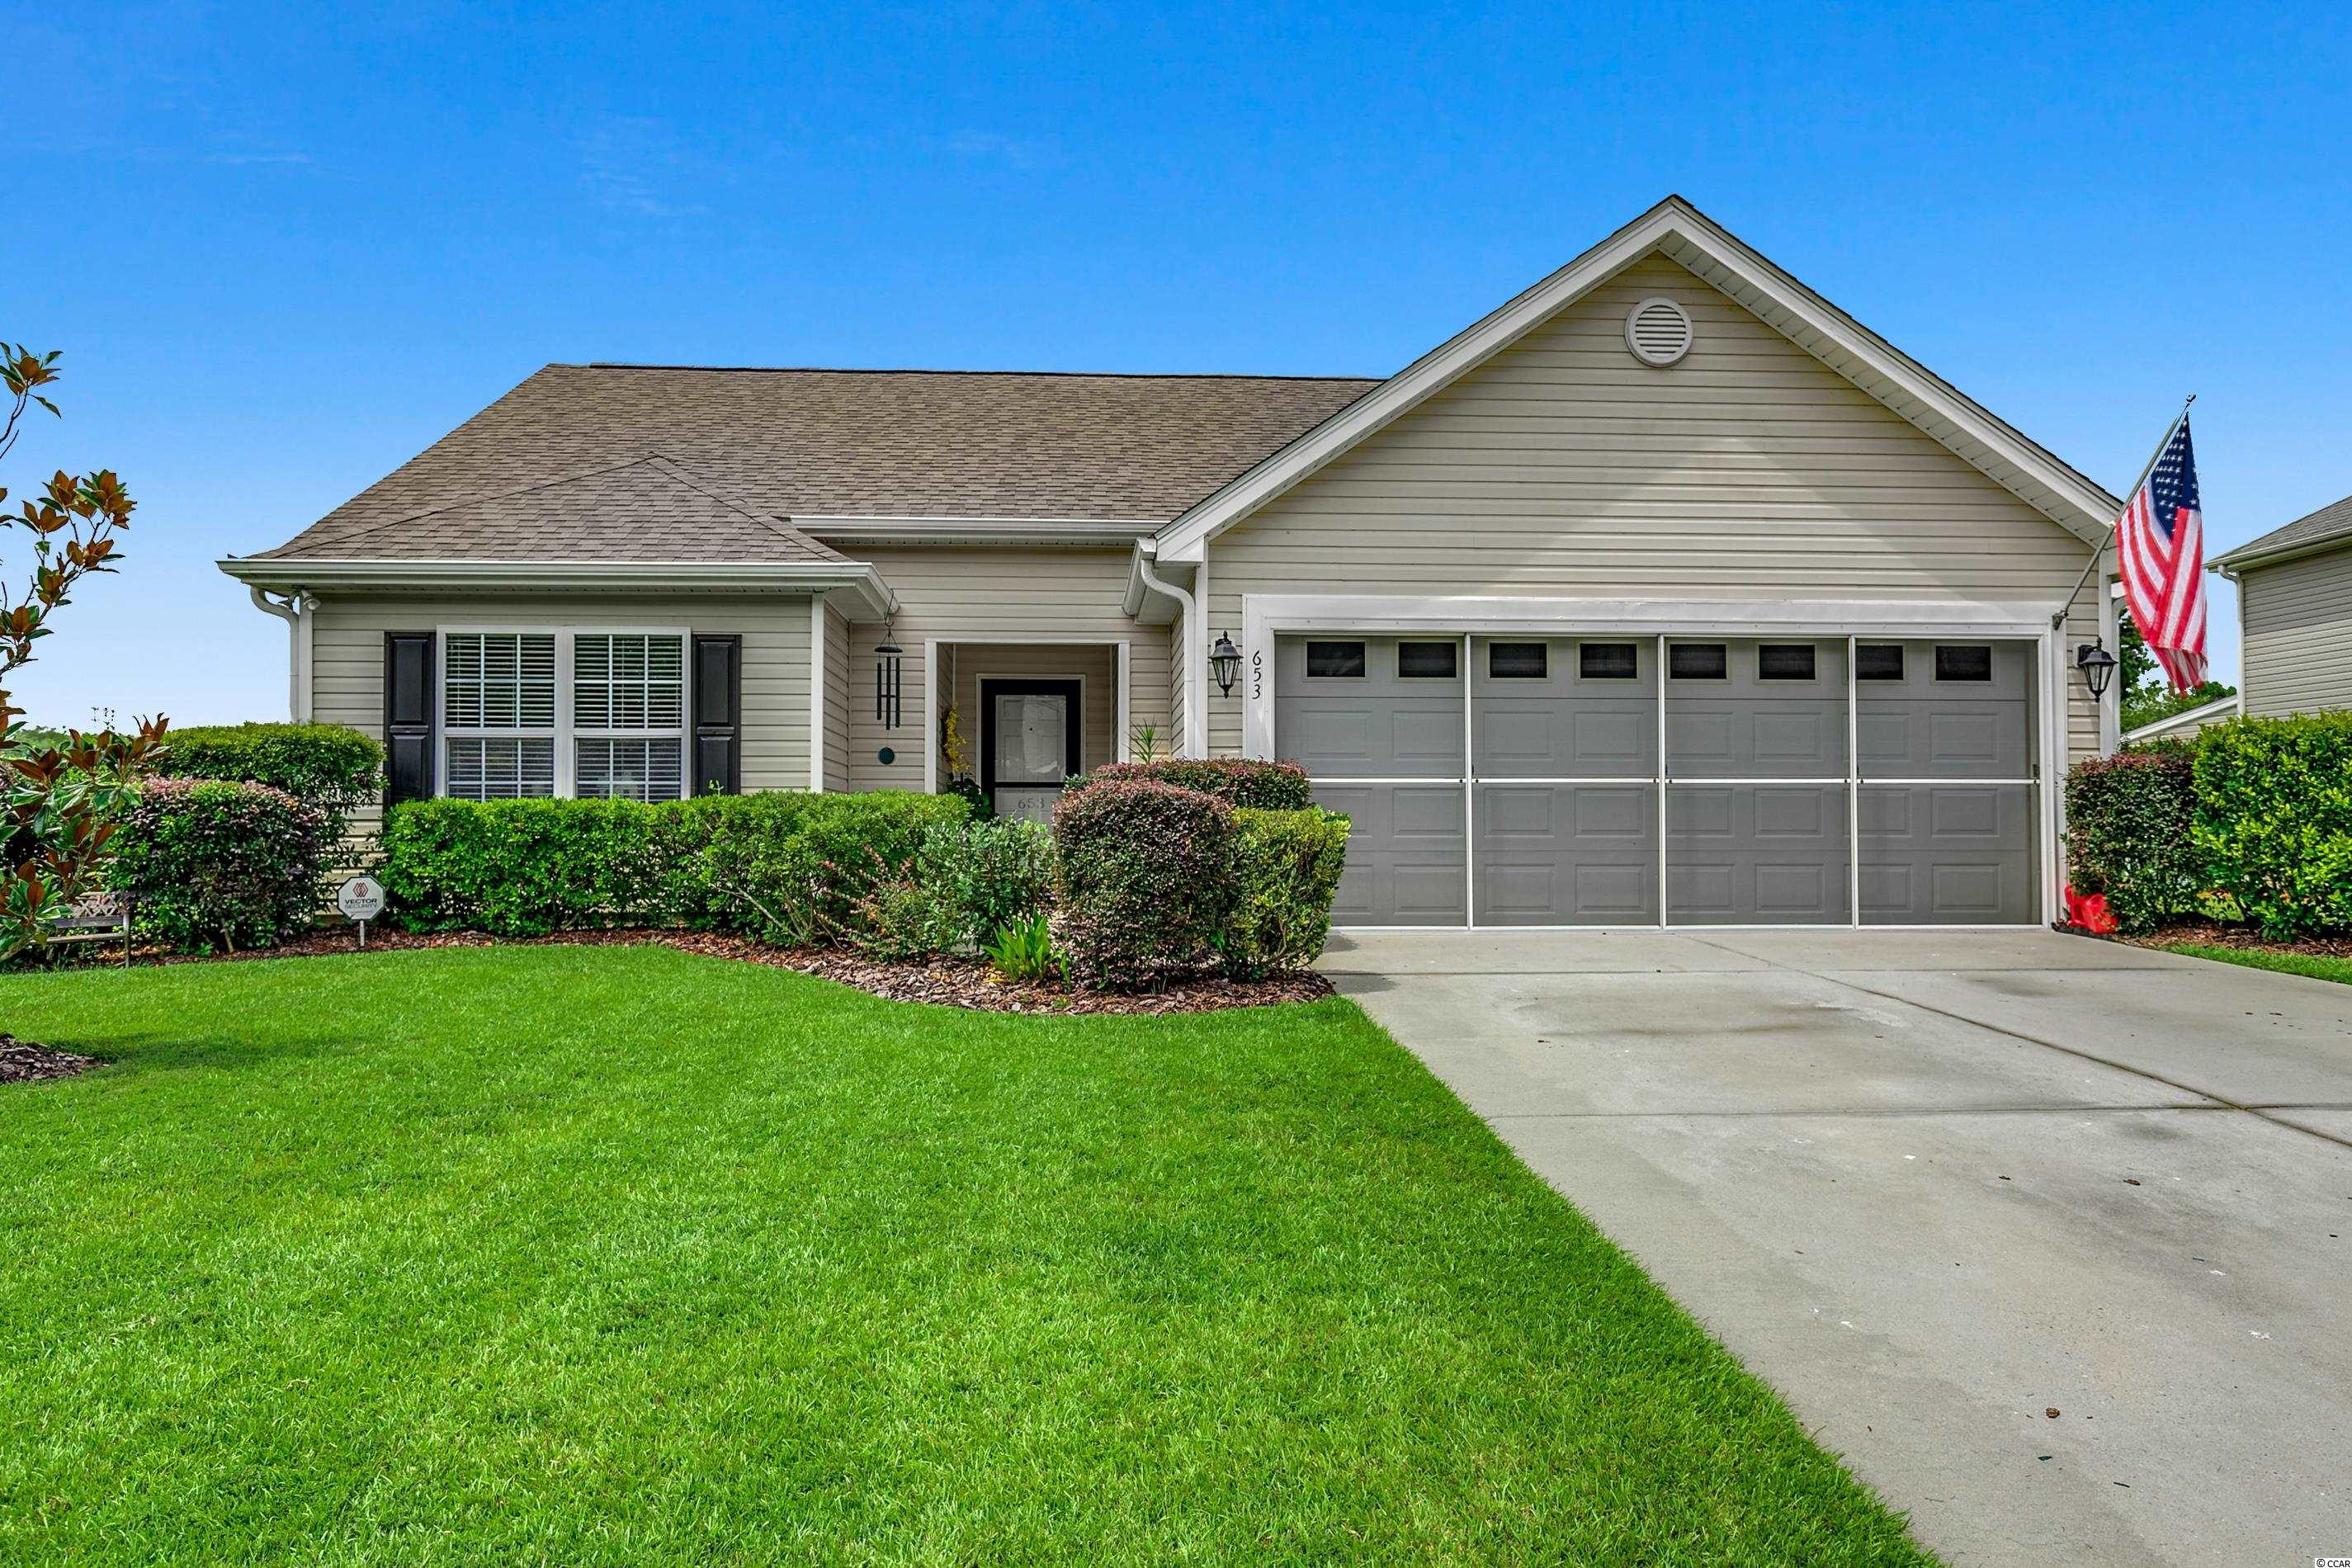 Beautiful 3 Bedroom - 2 Bath Home in well established community. Bright open Carolina Room, Screened in Back Porch installed 2015 with ceiling fan, Exterior Stone patio for your entertainment, Garage has pull down door for quick access to  attic and double garage door screen. Large Master bedroom/Bathroom with ceiling fan, walk-in closet, double vanity sinks, Walk-in Shower, Linen Closet & vinyl plank Flooring. Kitchen offers Granite counter tops. All appliances convey to the new owner. Luxury vinyl planking thru out home except the 2 guest bedrooms. New water heater installed 2014. New roof installed 2015. Home is located 1.5 miles to NMB Park & Sport Center, 4 Miles to NMB Aquatic & Fitness Ctr. Quick access to Hwy 31 & main street in NMB. If interested please contact your agent for floorplan.